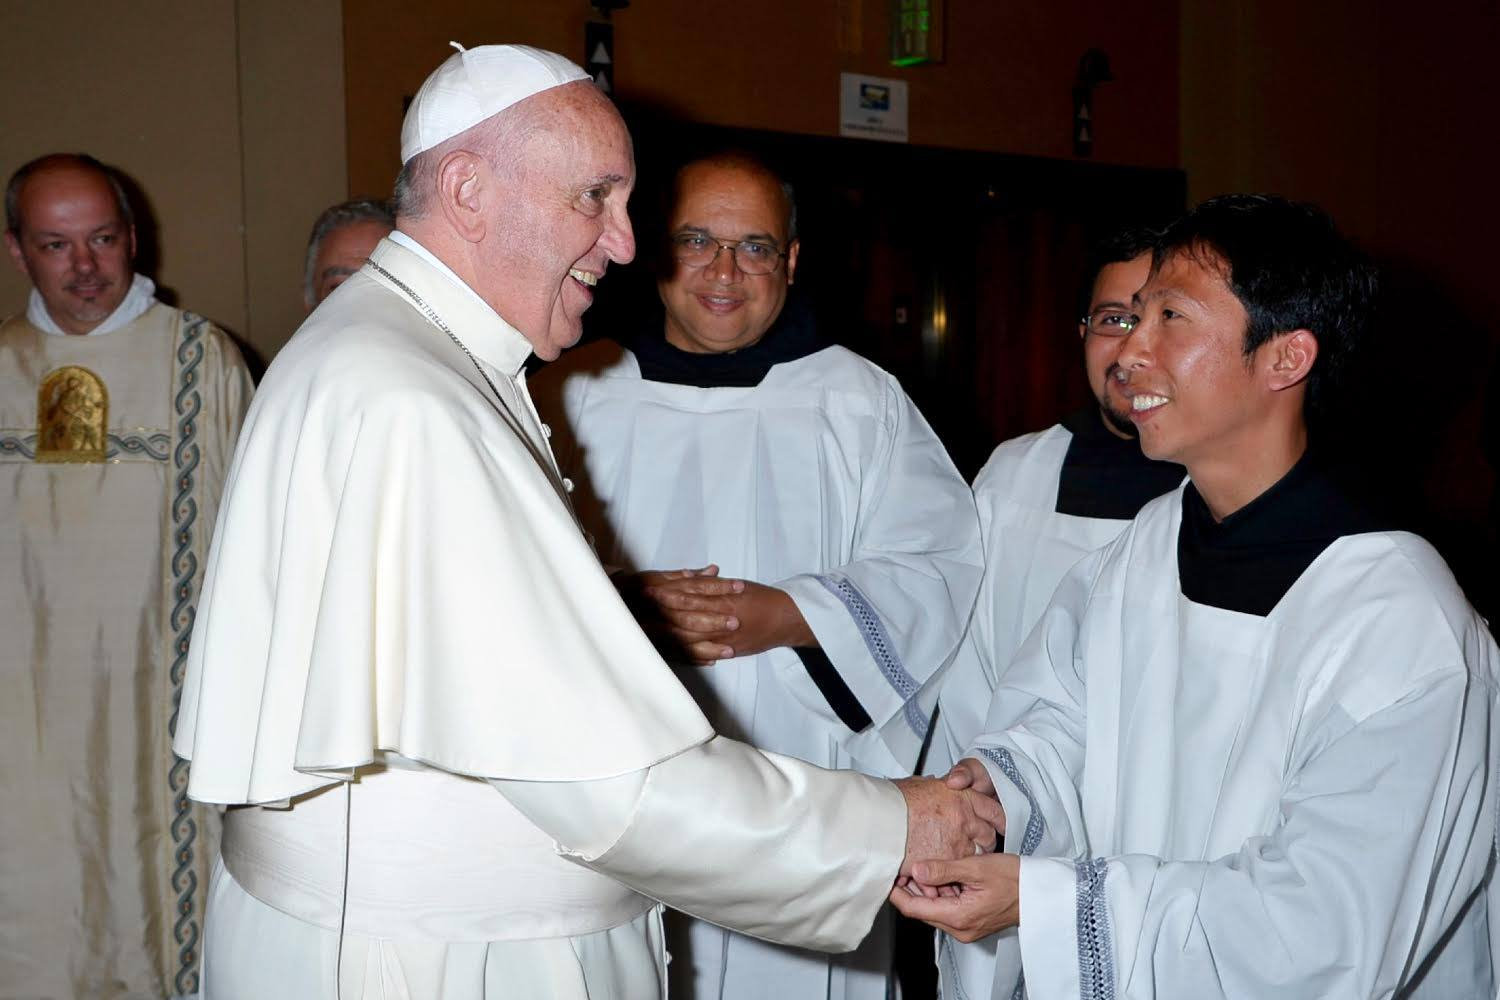 Brother Richie met Pope Francis in June 2015